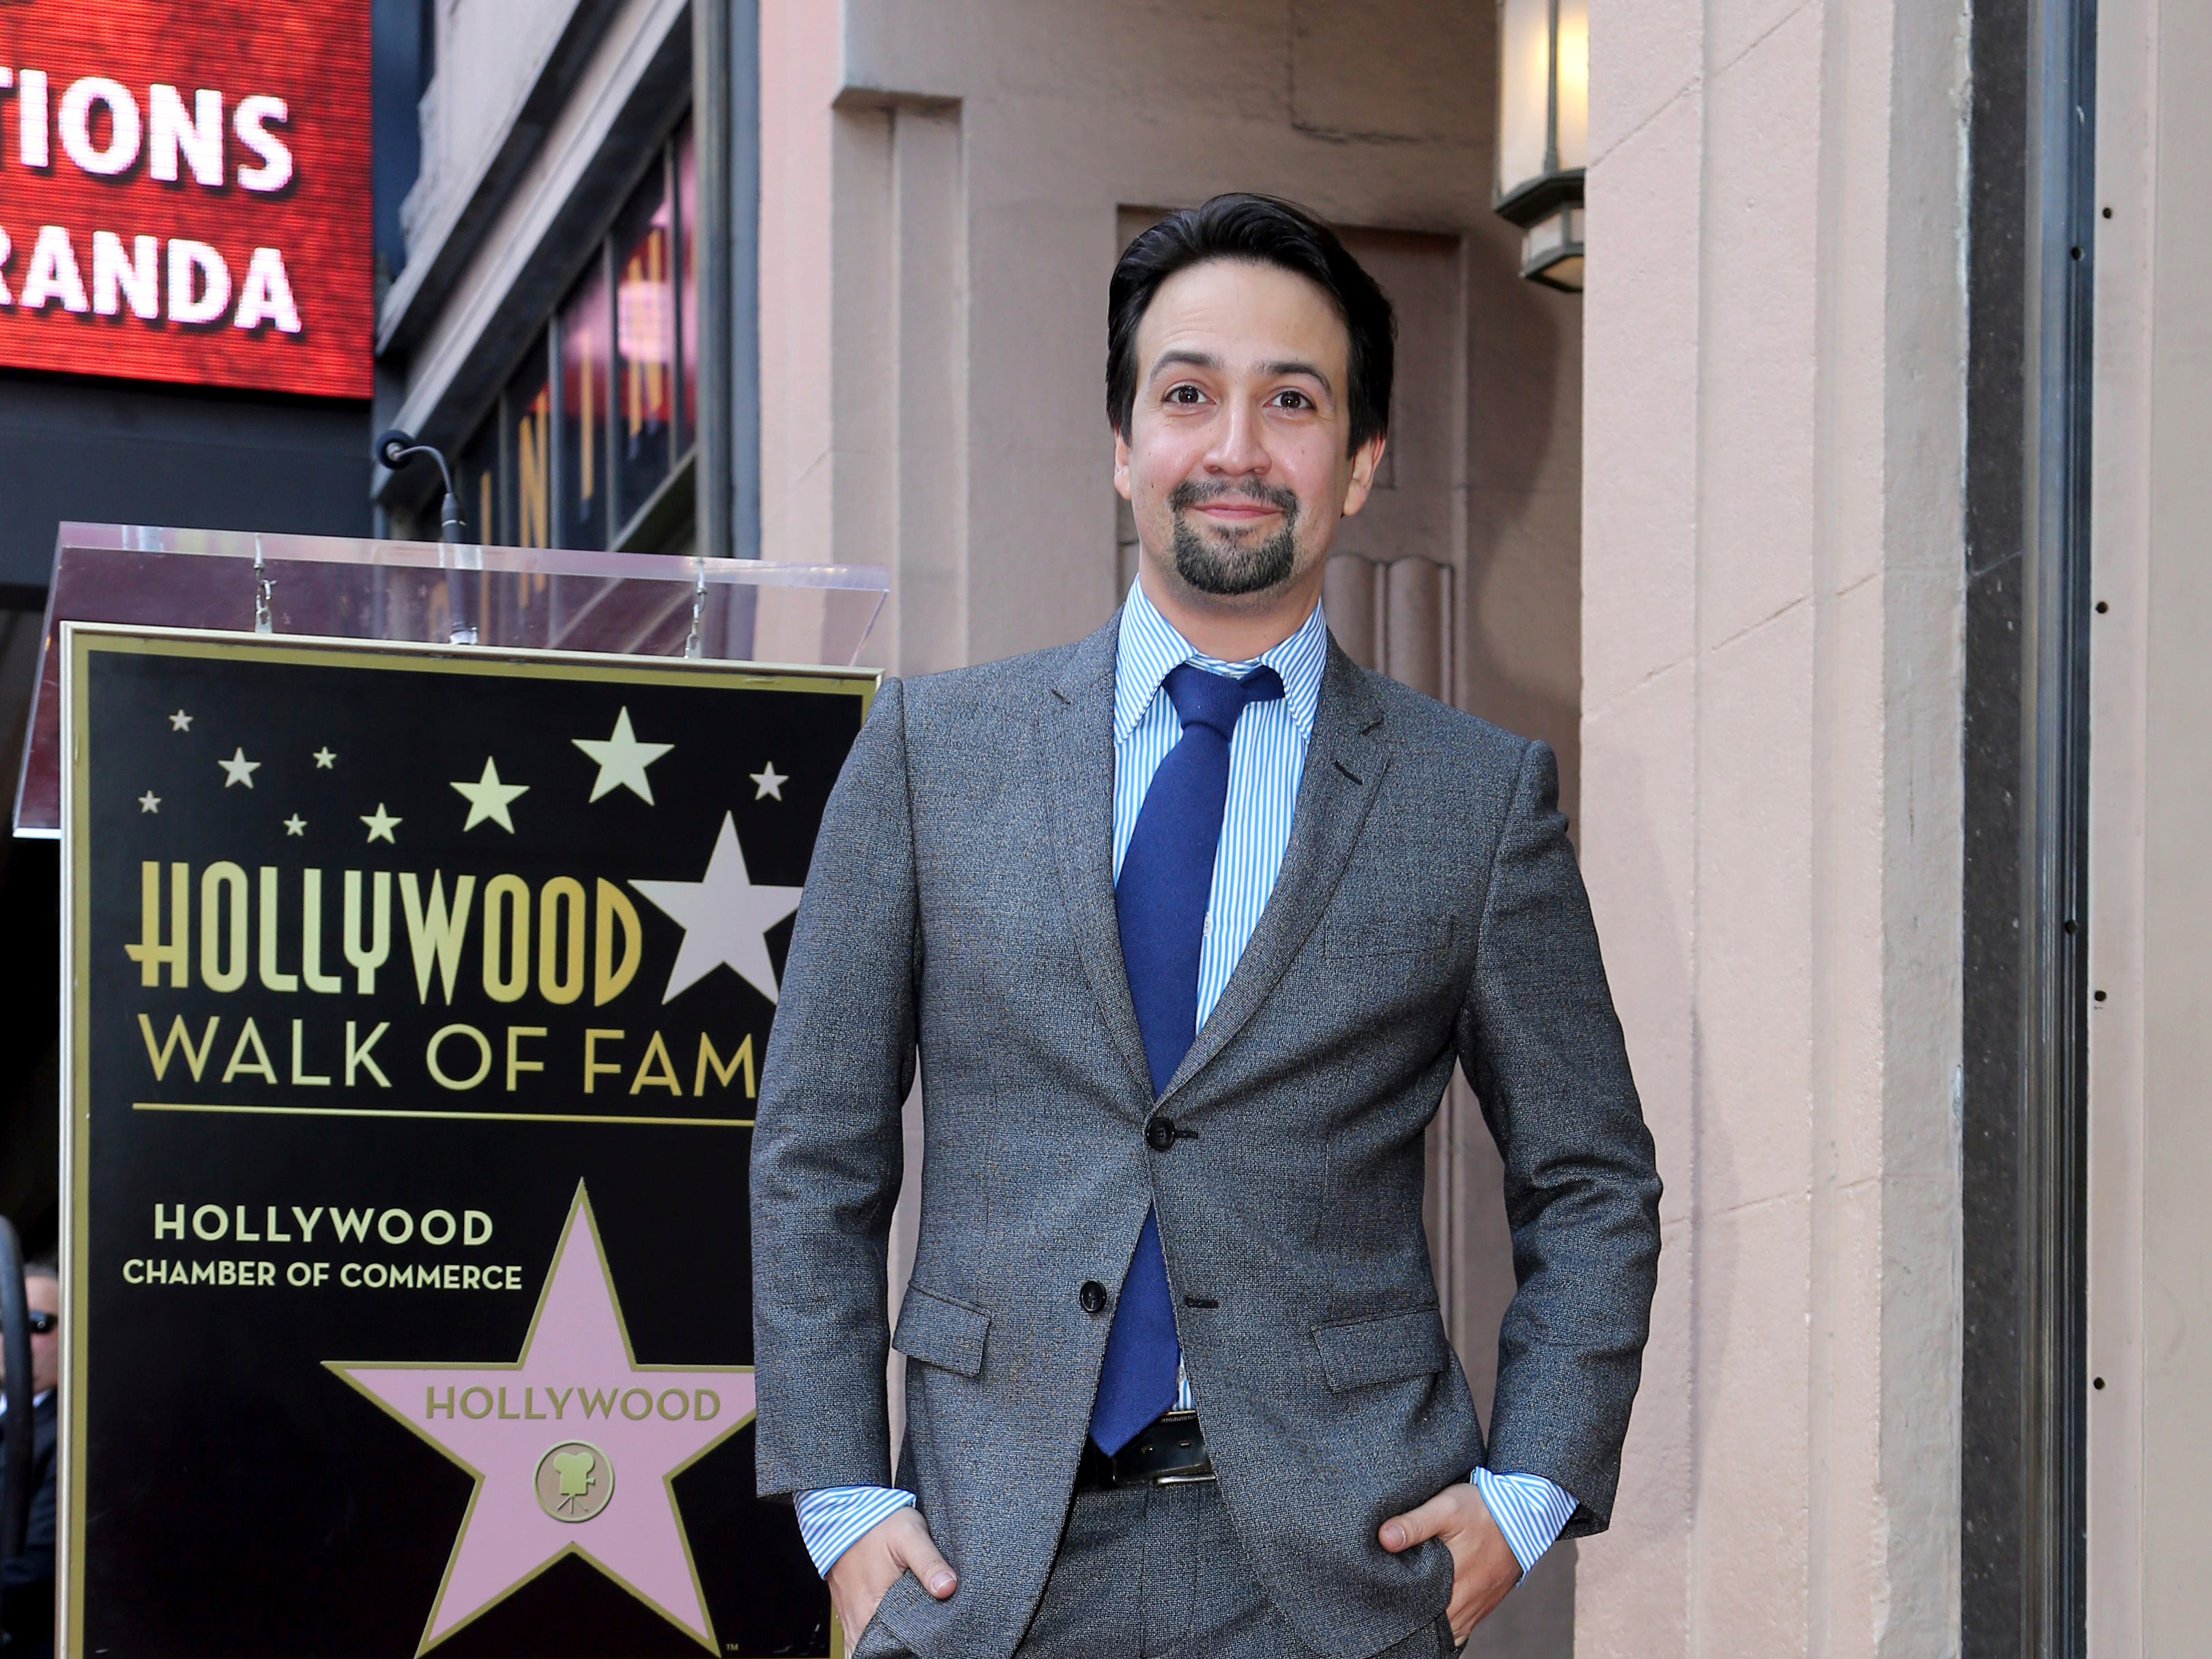 November 30: The next day, Lin-Manuel Miranda is honored with a star on the Hollywood Walk of Fame.